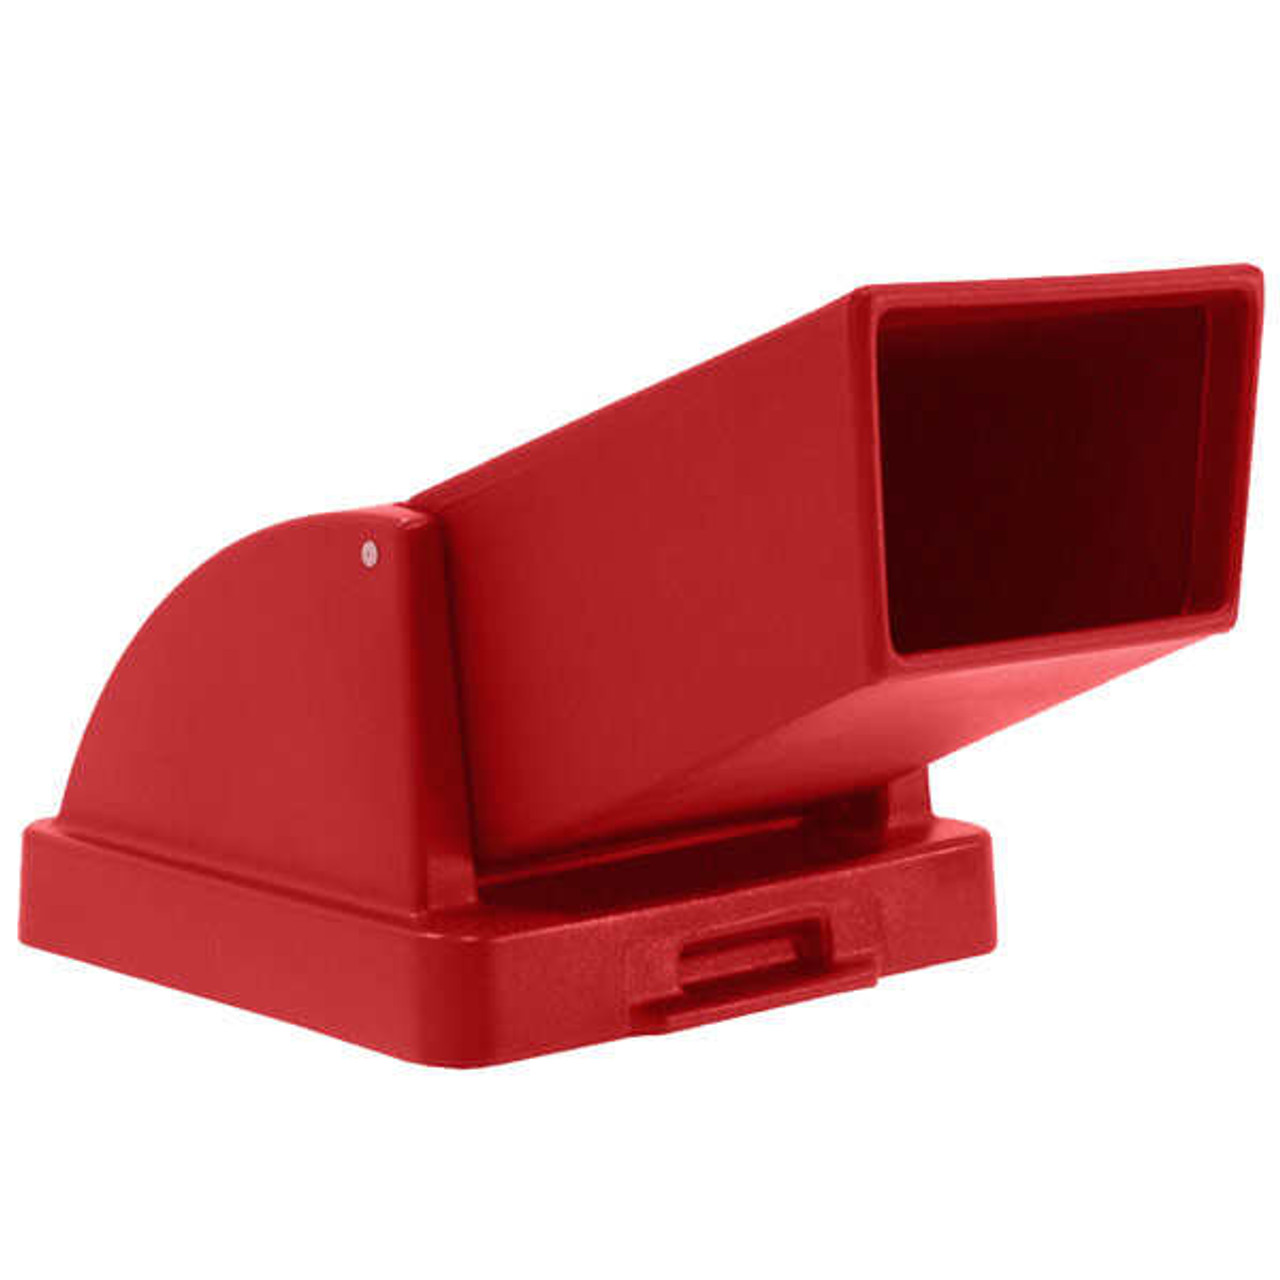 20.5 x 20.5 Drive Up Lid TF1401/TF1416 for Concrete Trash Cans Square (RED)